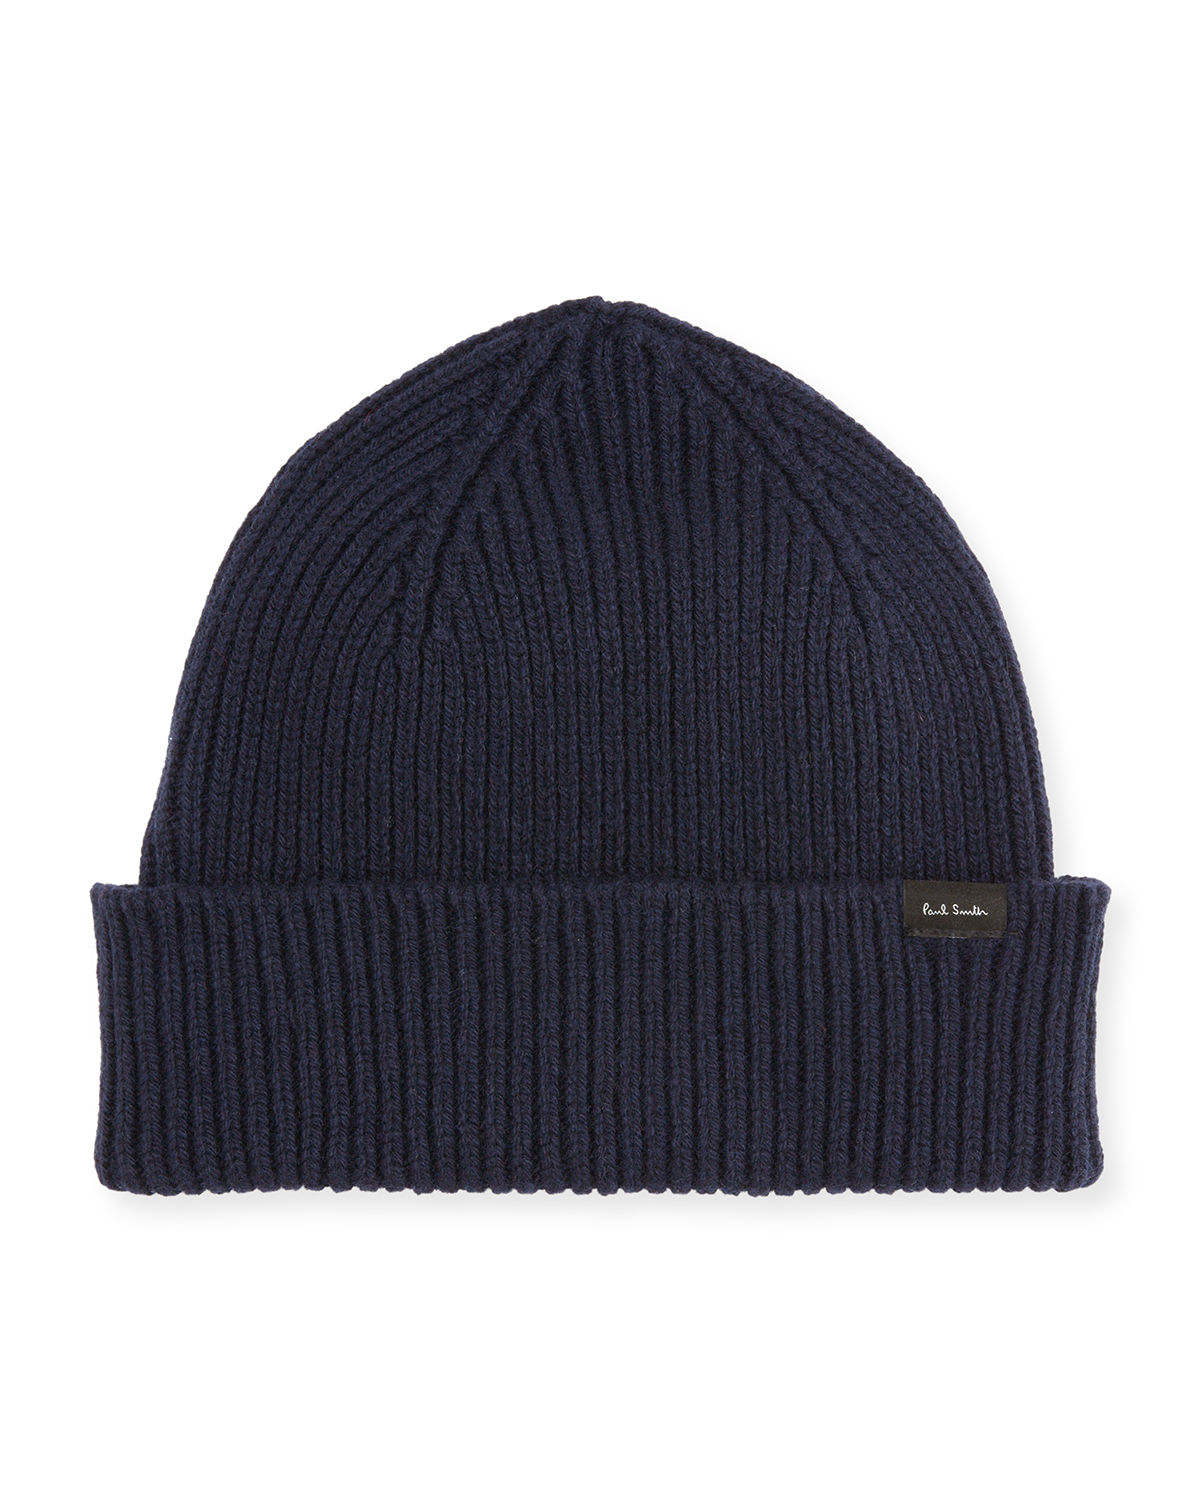 Men's Ribbed Cashmere-Wool Beanie Hat